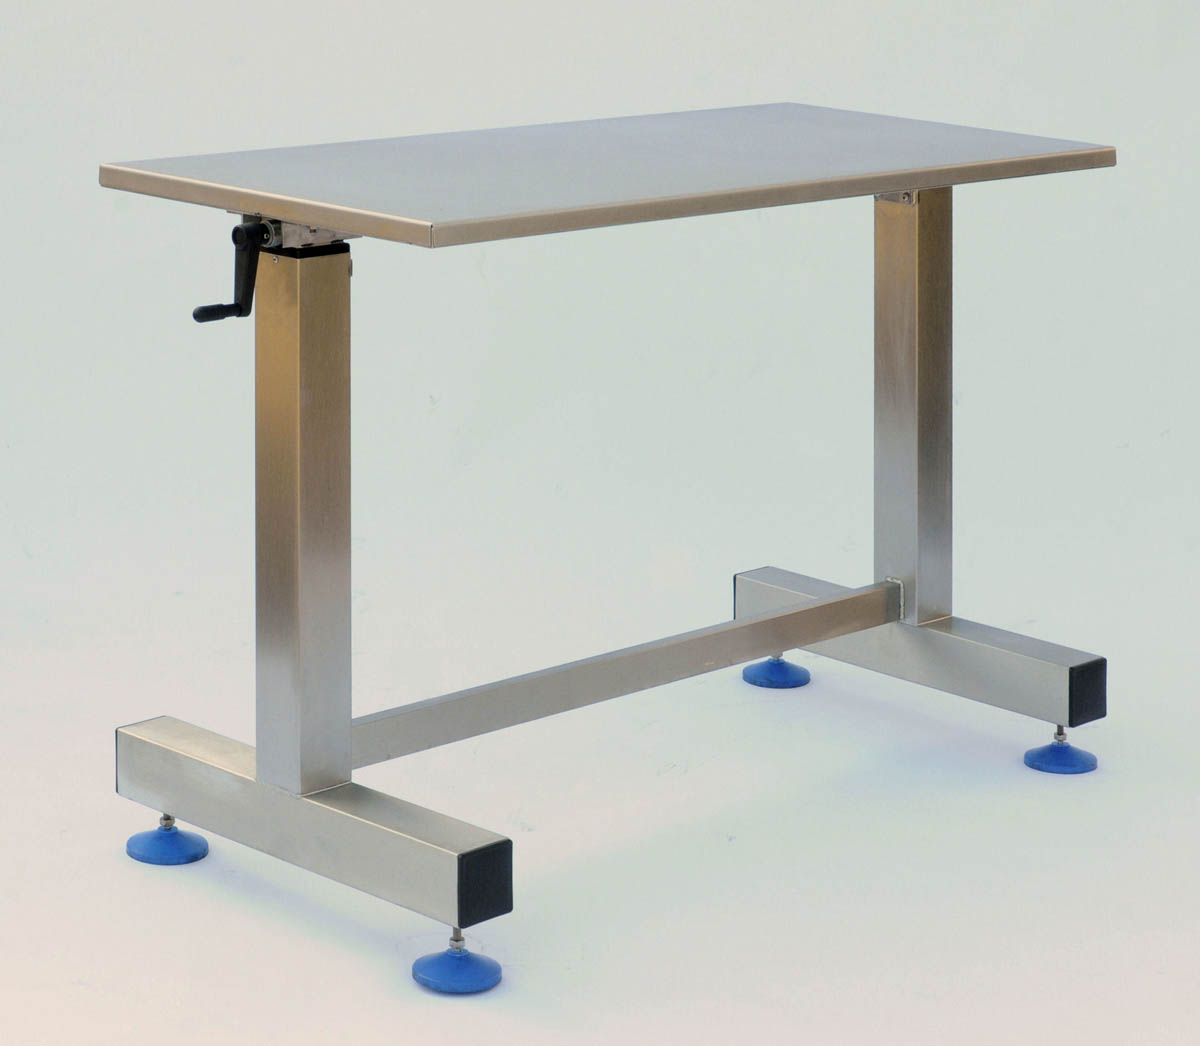 100 Packing Benches 184 Best A Piece Of Rainbow Diy  : Height adjustable Packing table from 45.32.79.15 size 1200 x 1046 jpeg 81kB